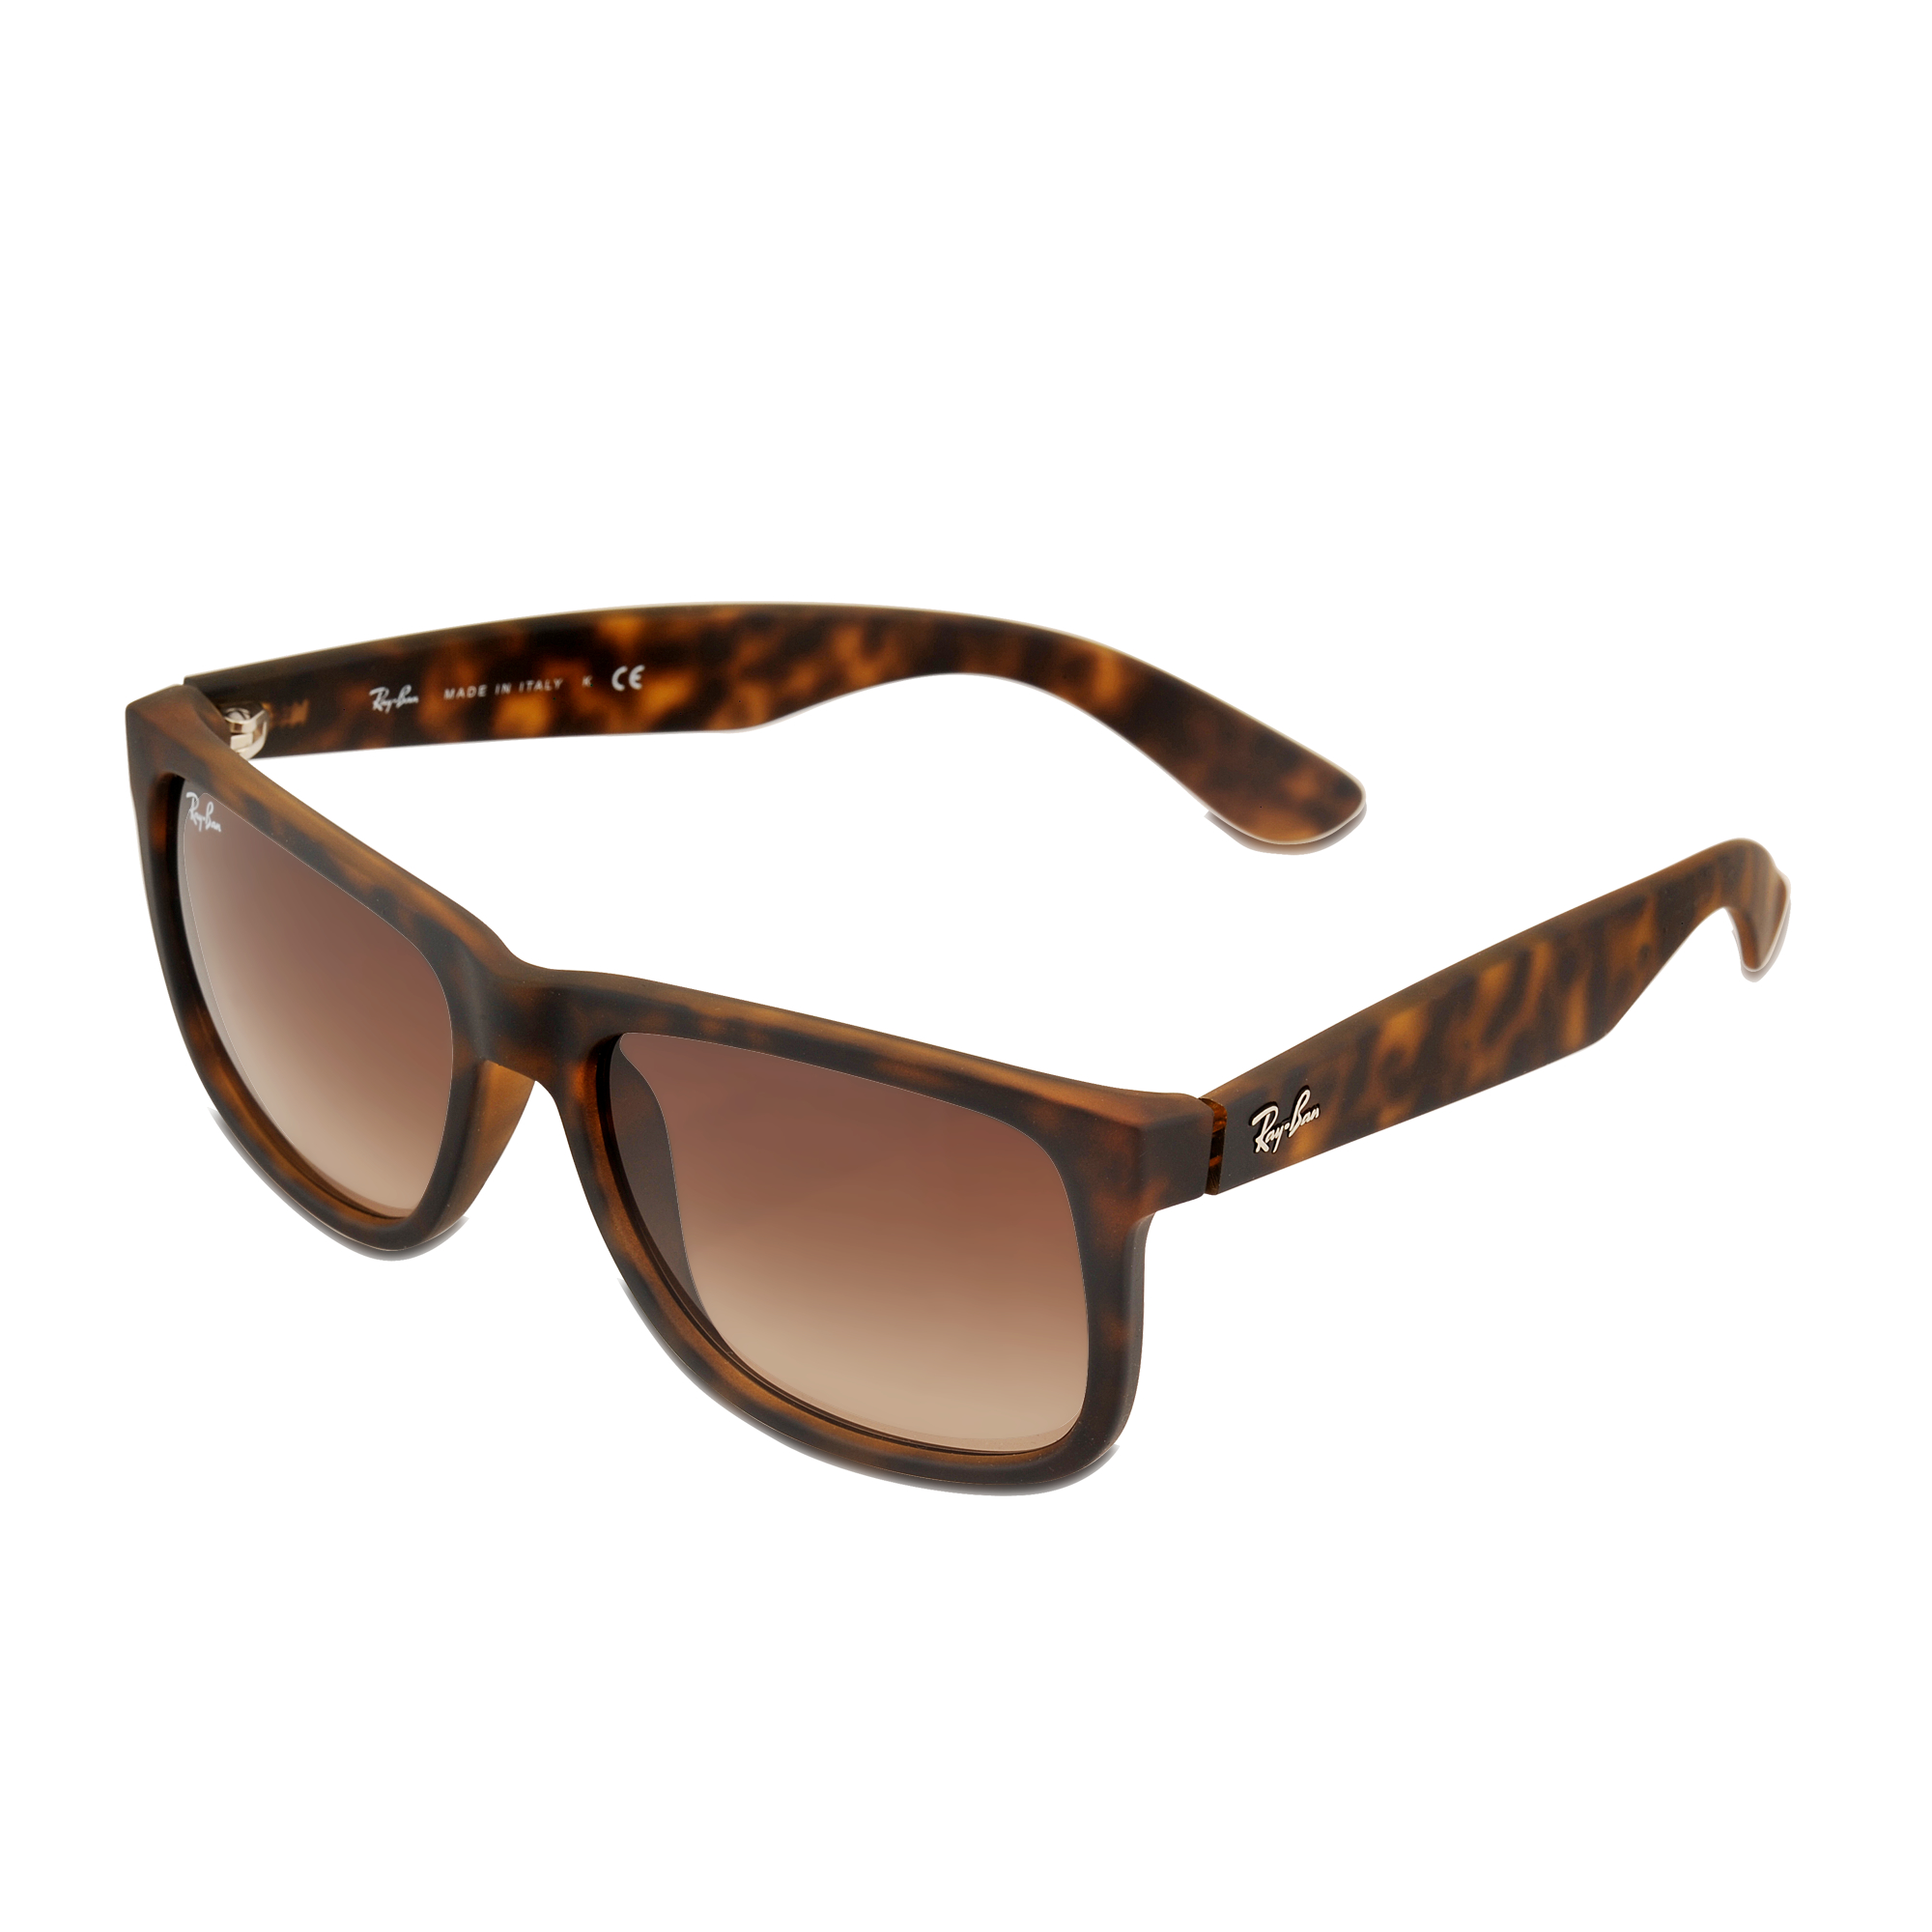 Ray-ban 0rb4165 Sunglasses in Brown